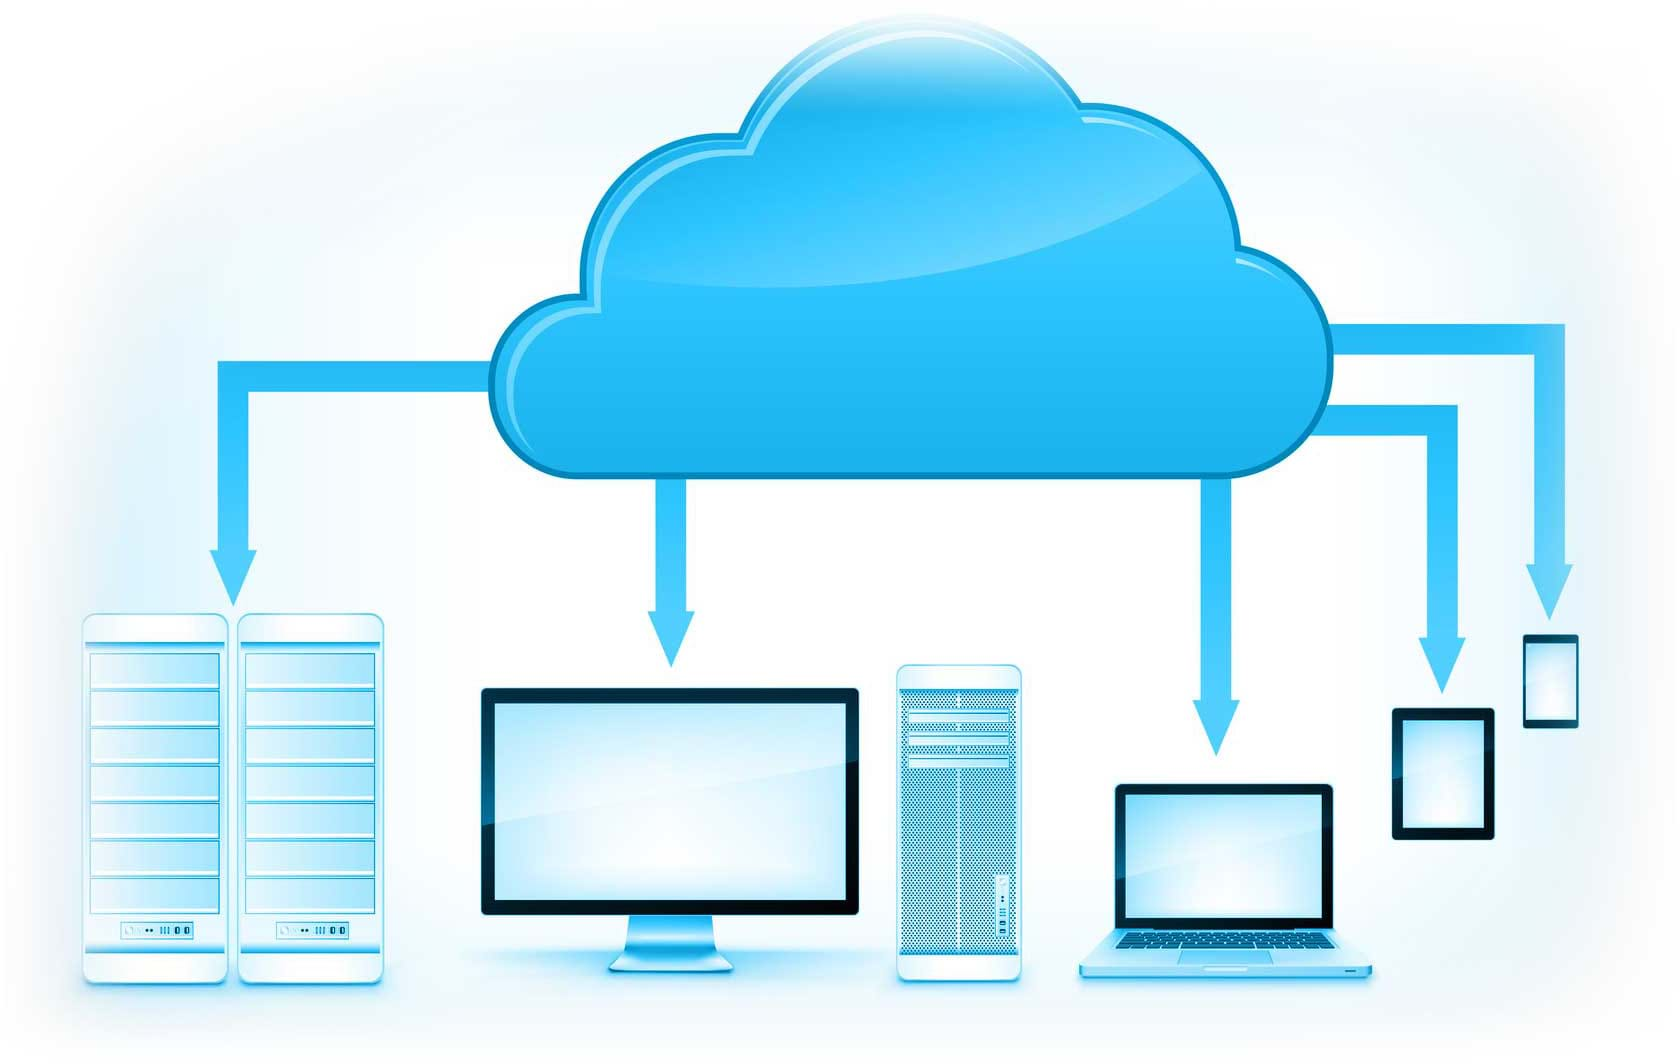 Cloud with Arrows Pointing to Computer and Mobile Devices